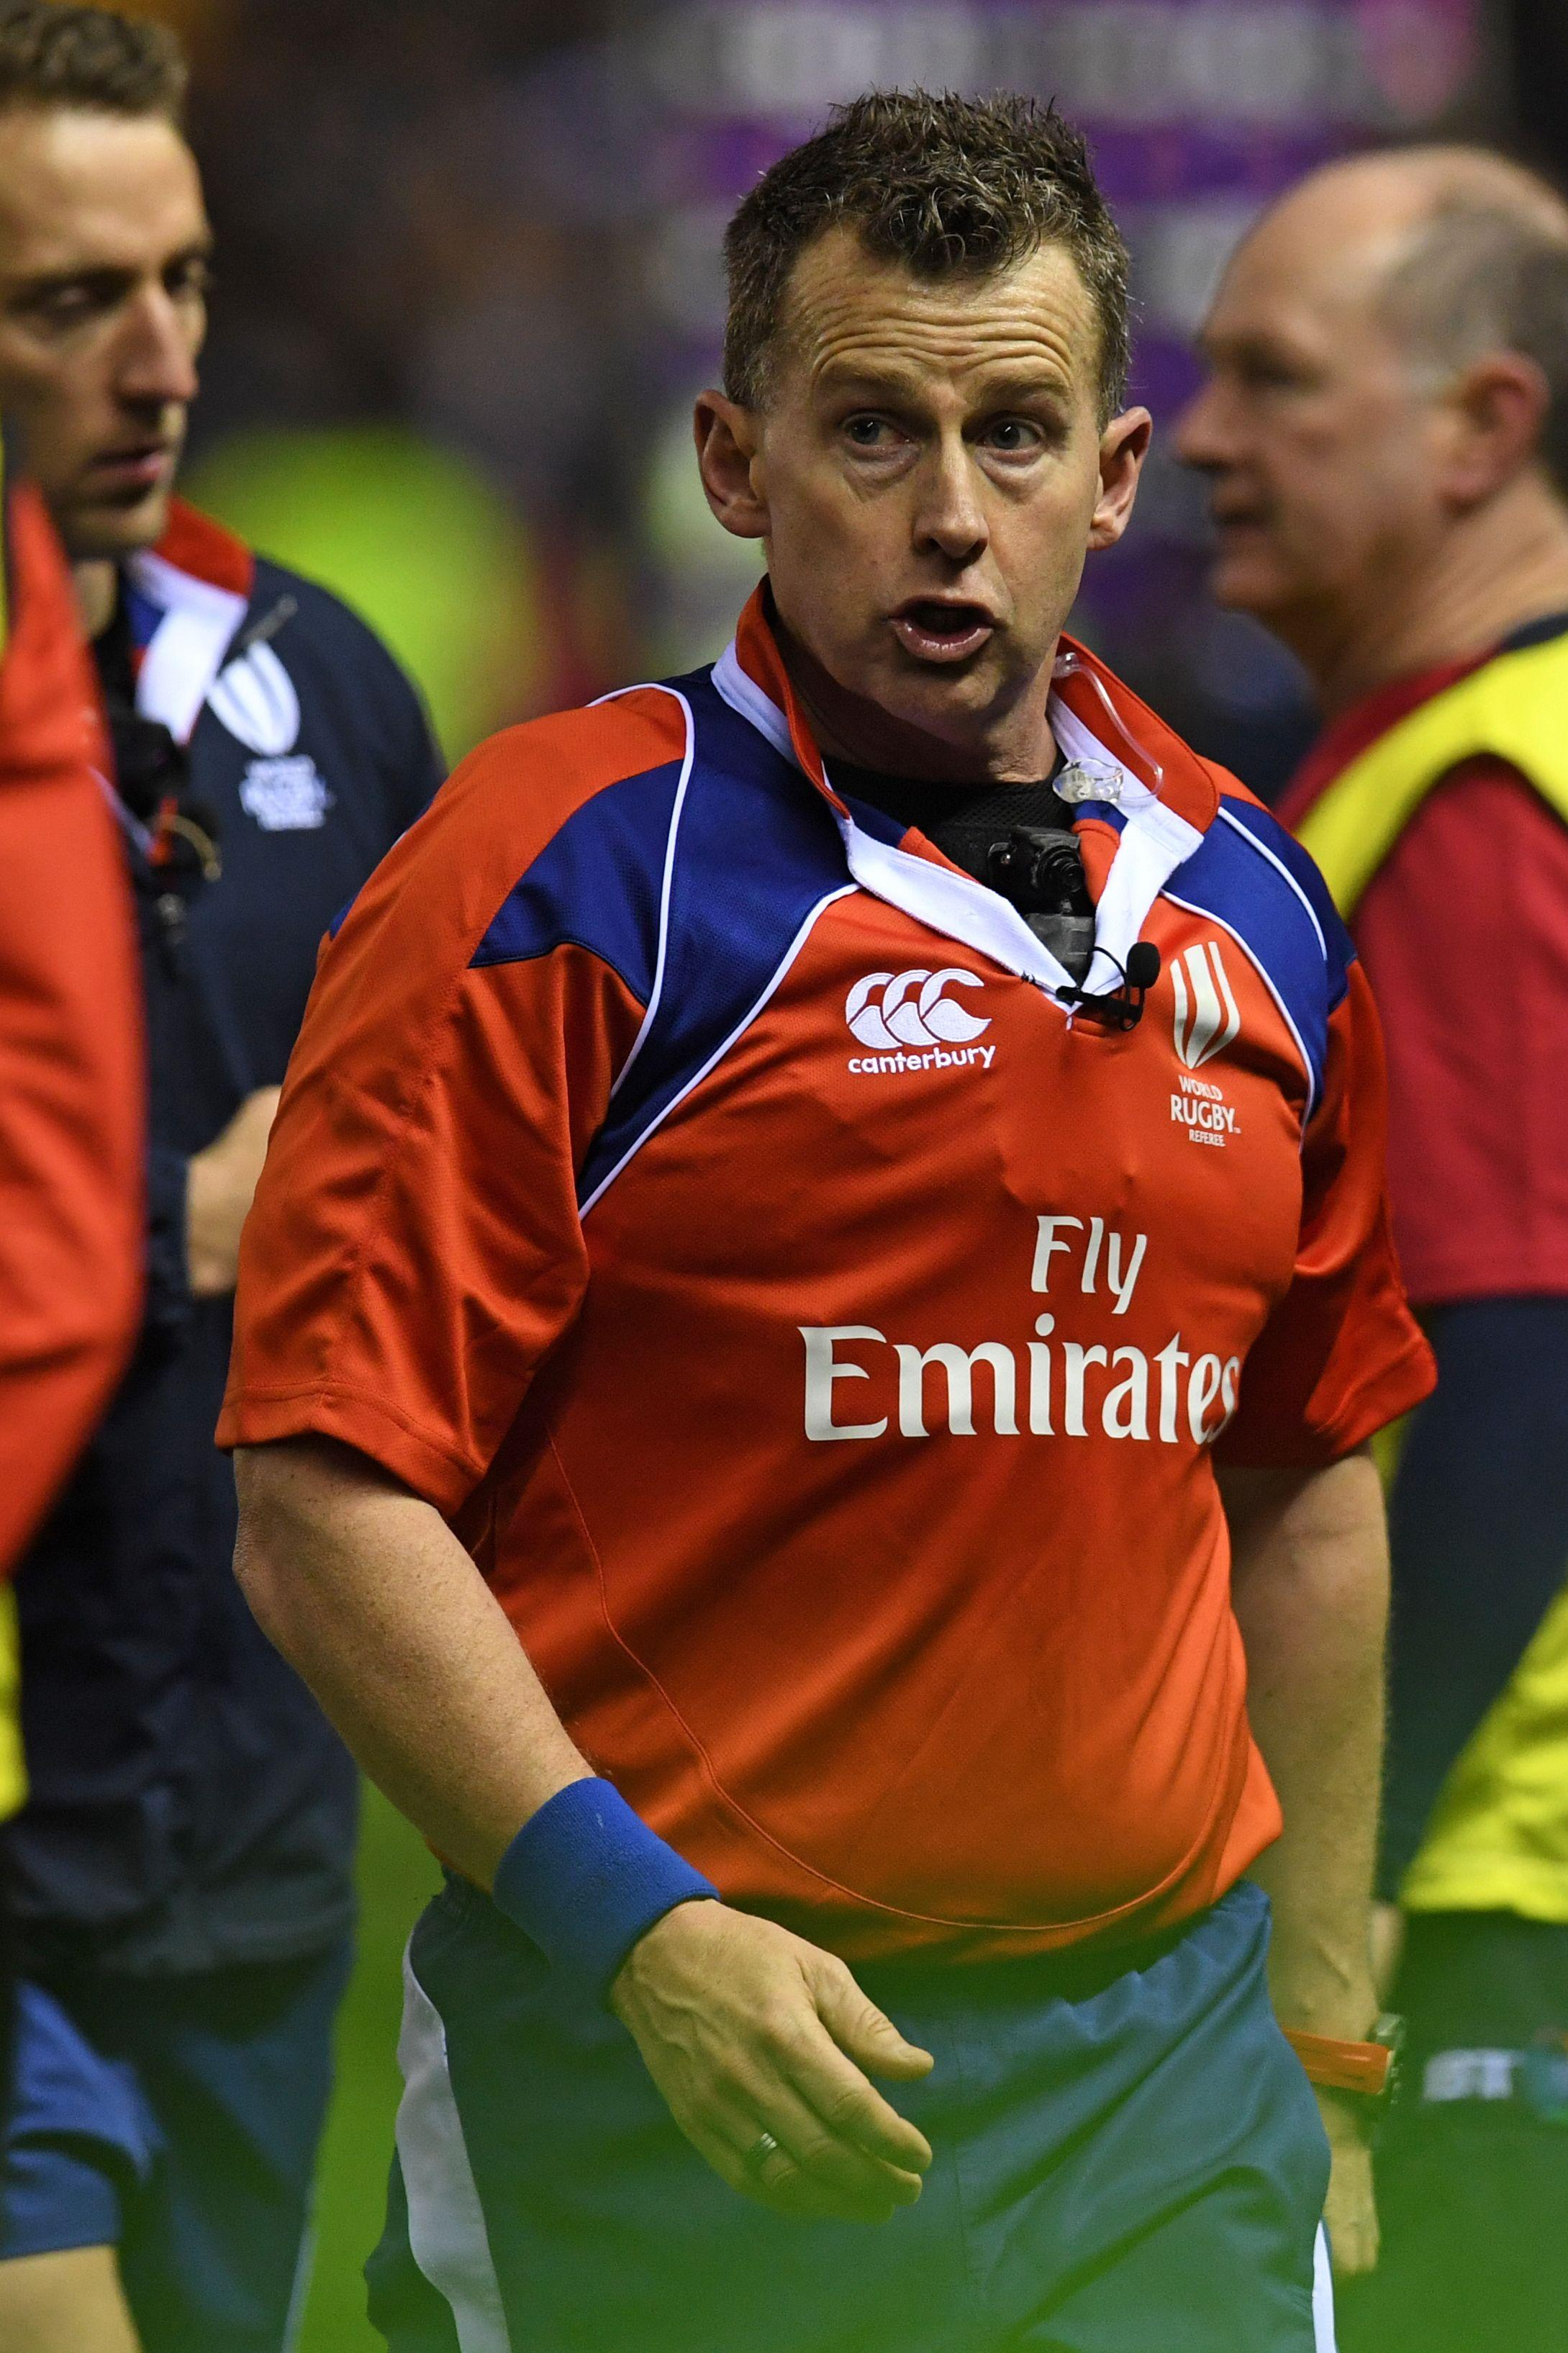 Nigel Owens is the first openly gay man to referee at the highest level